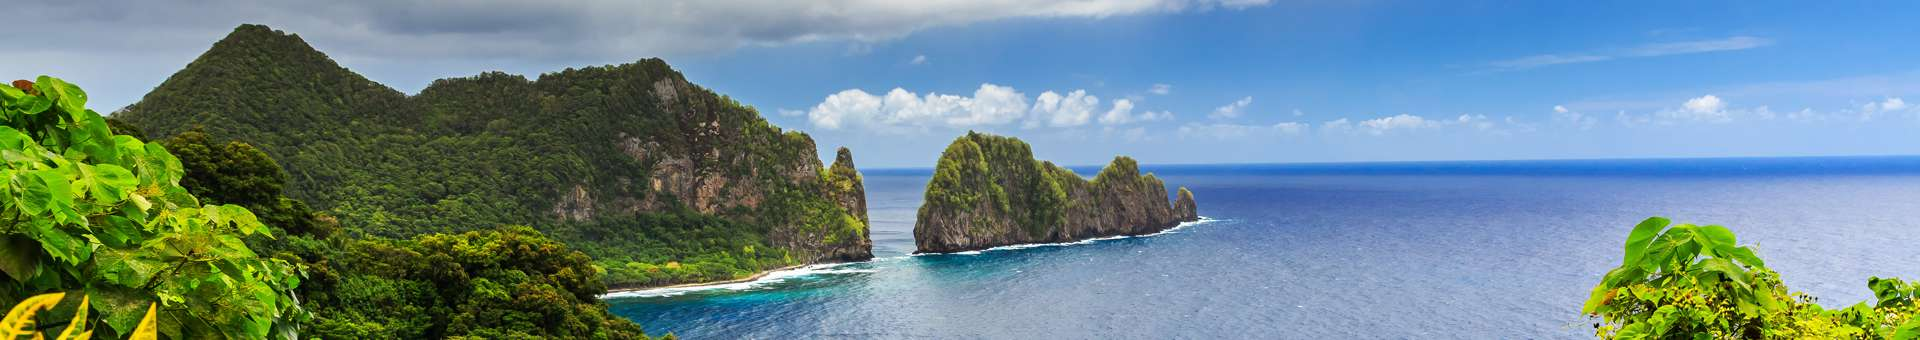 Search Whois information of domain names in American Samoa